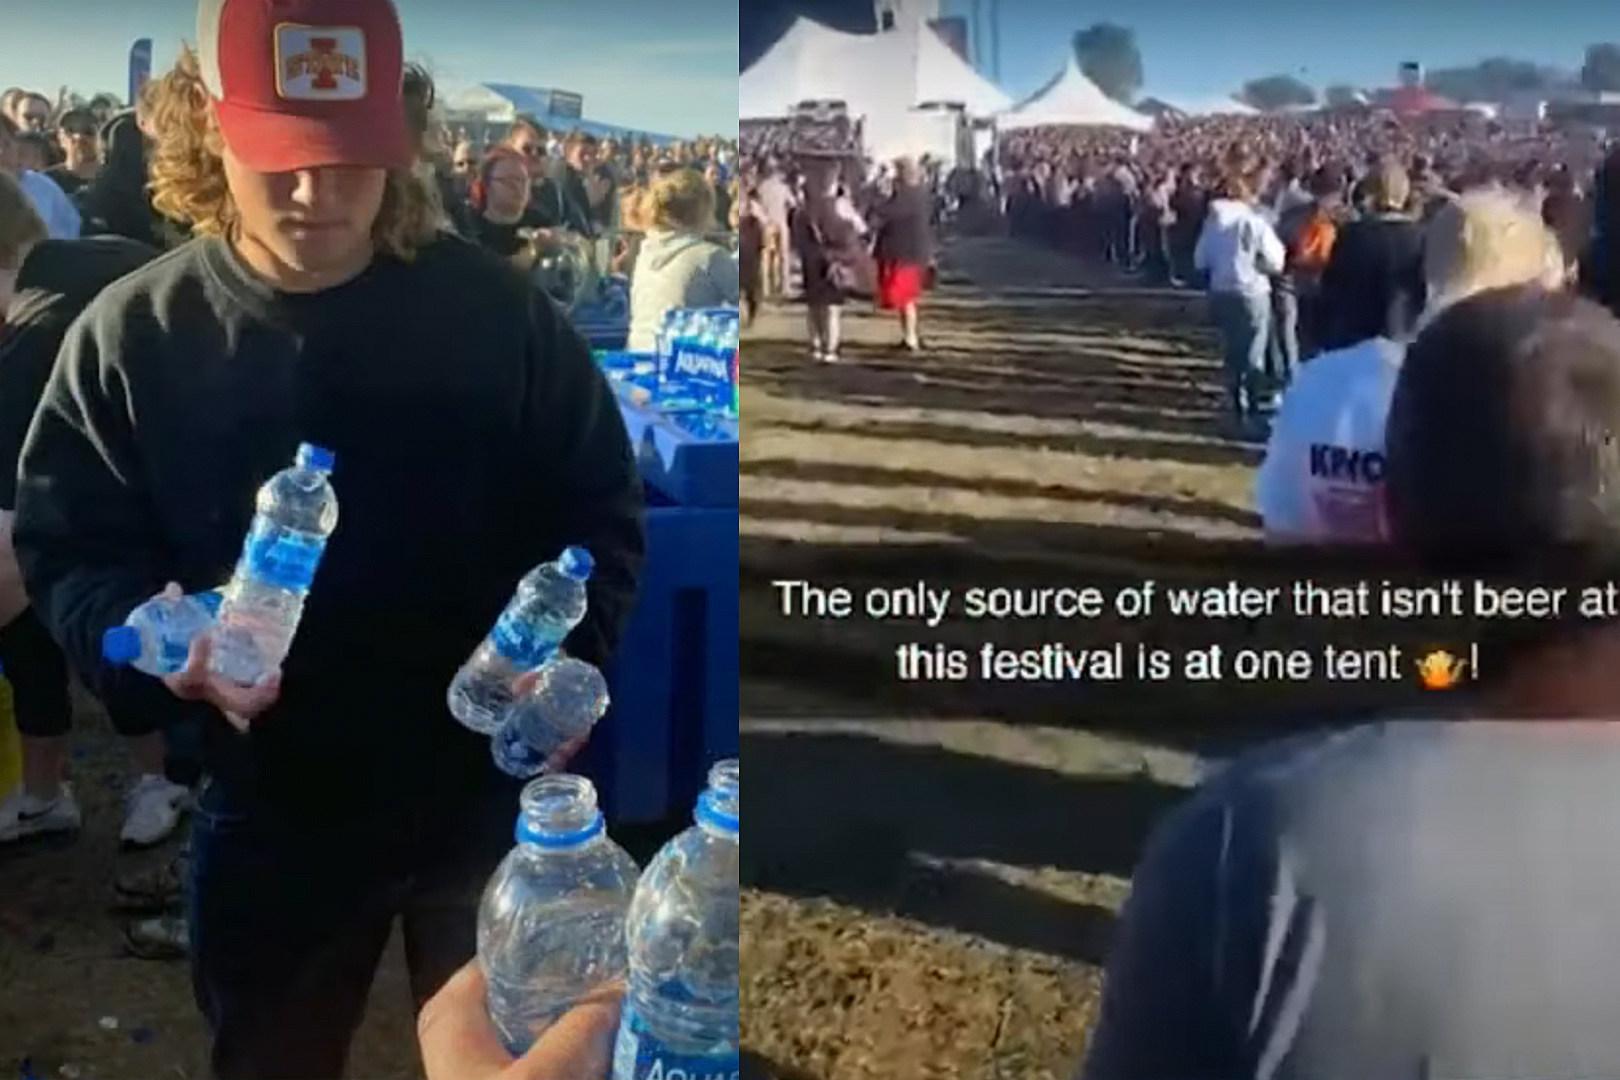 Knotfest Iowa Vendor Issues Statement on Two-Hour Wait for Water